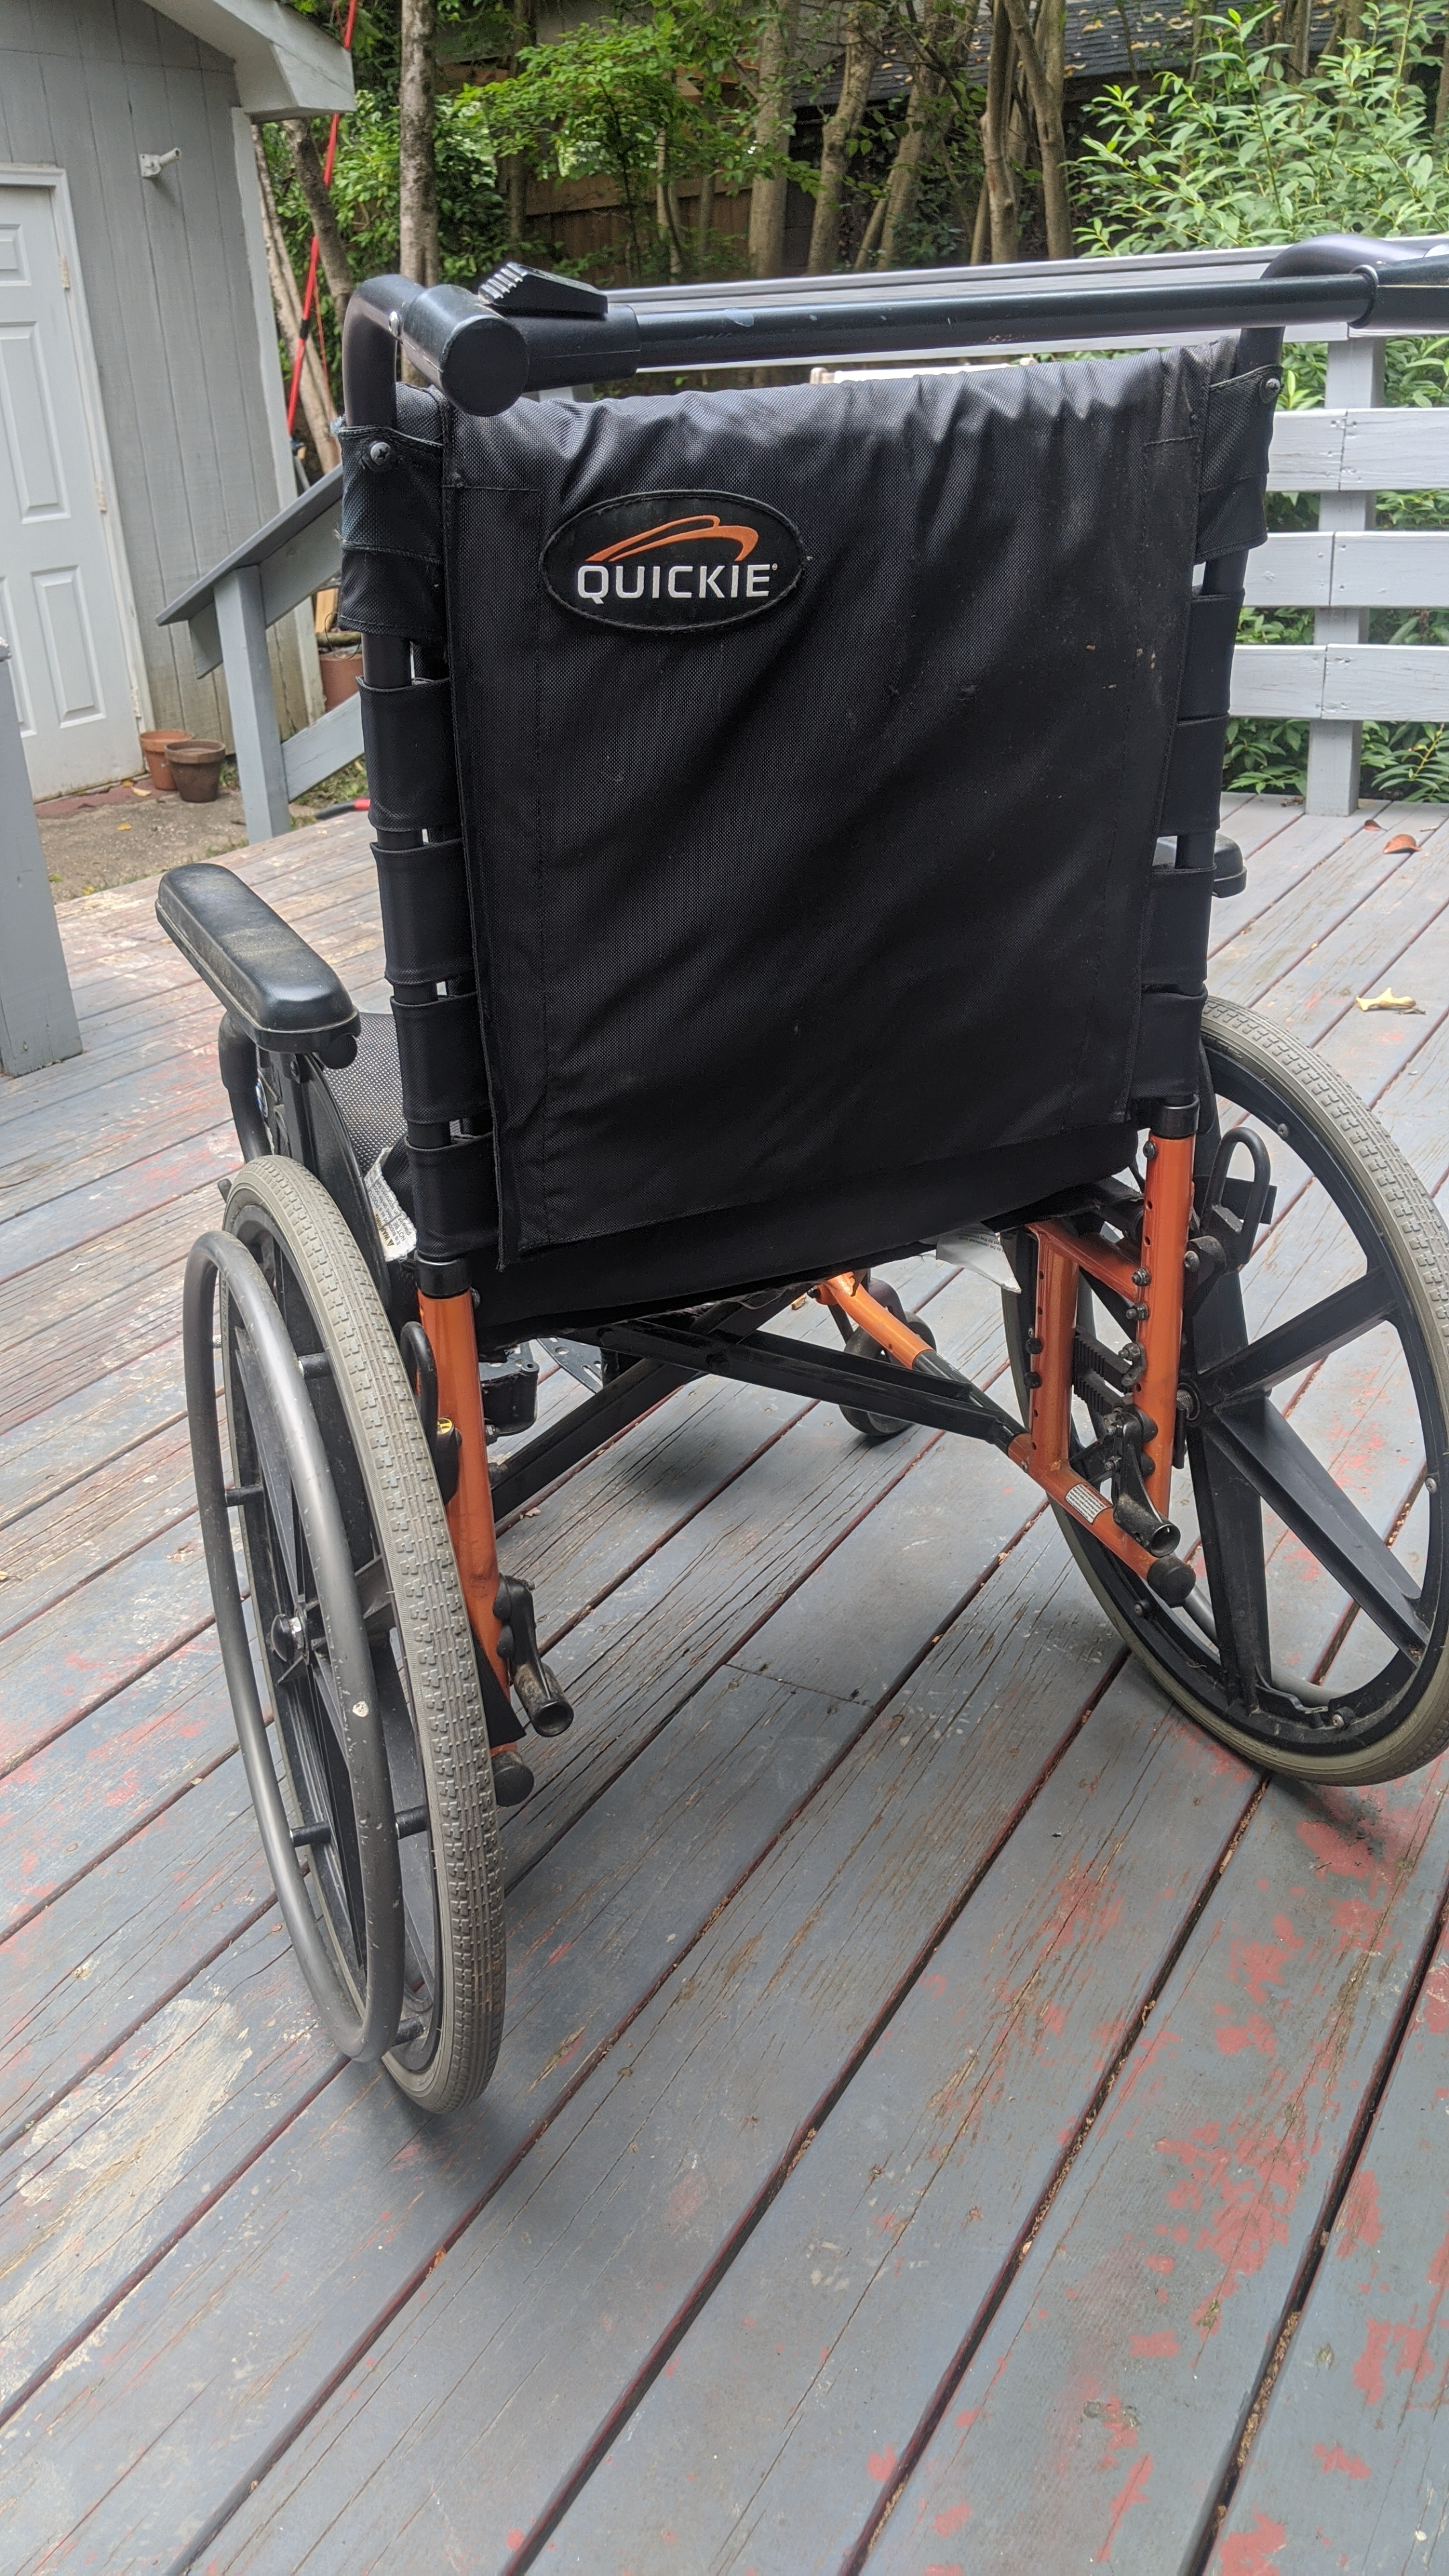 Photo 2 of Quickie Wheelchair